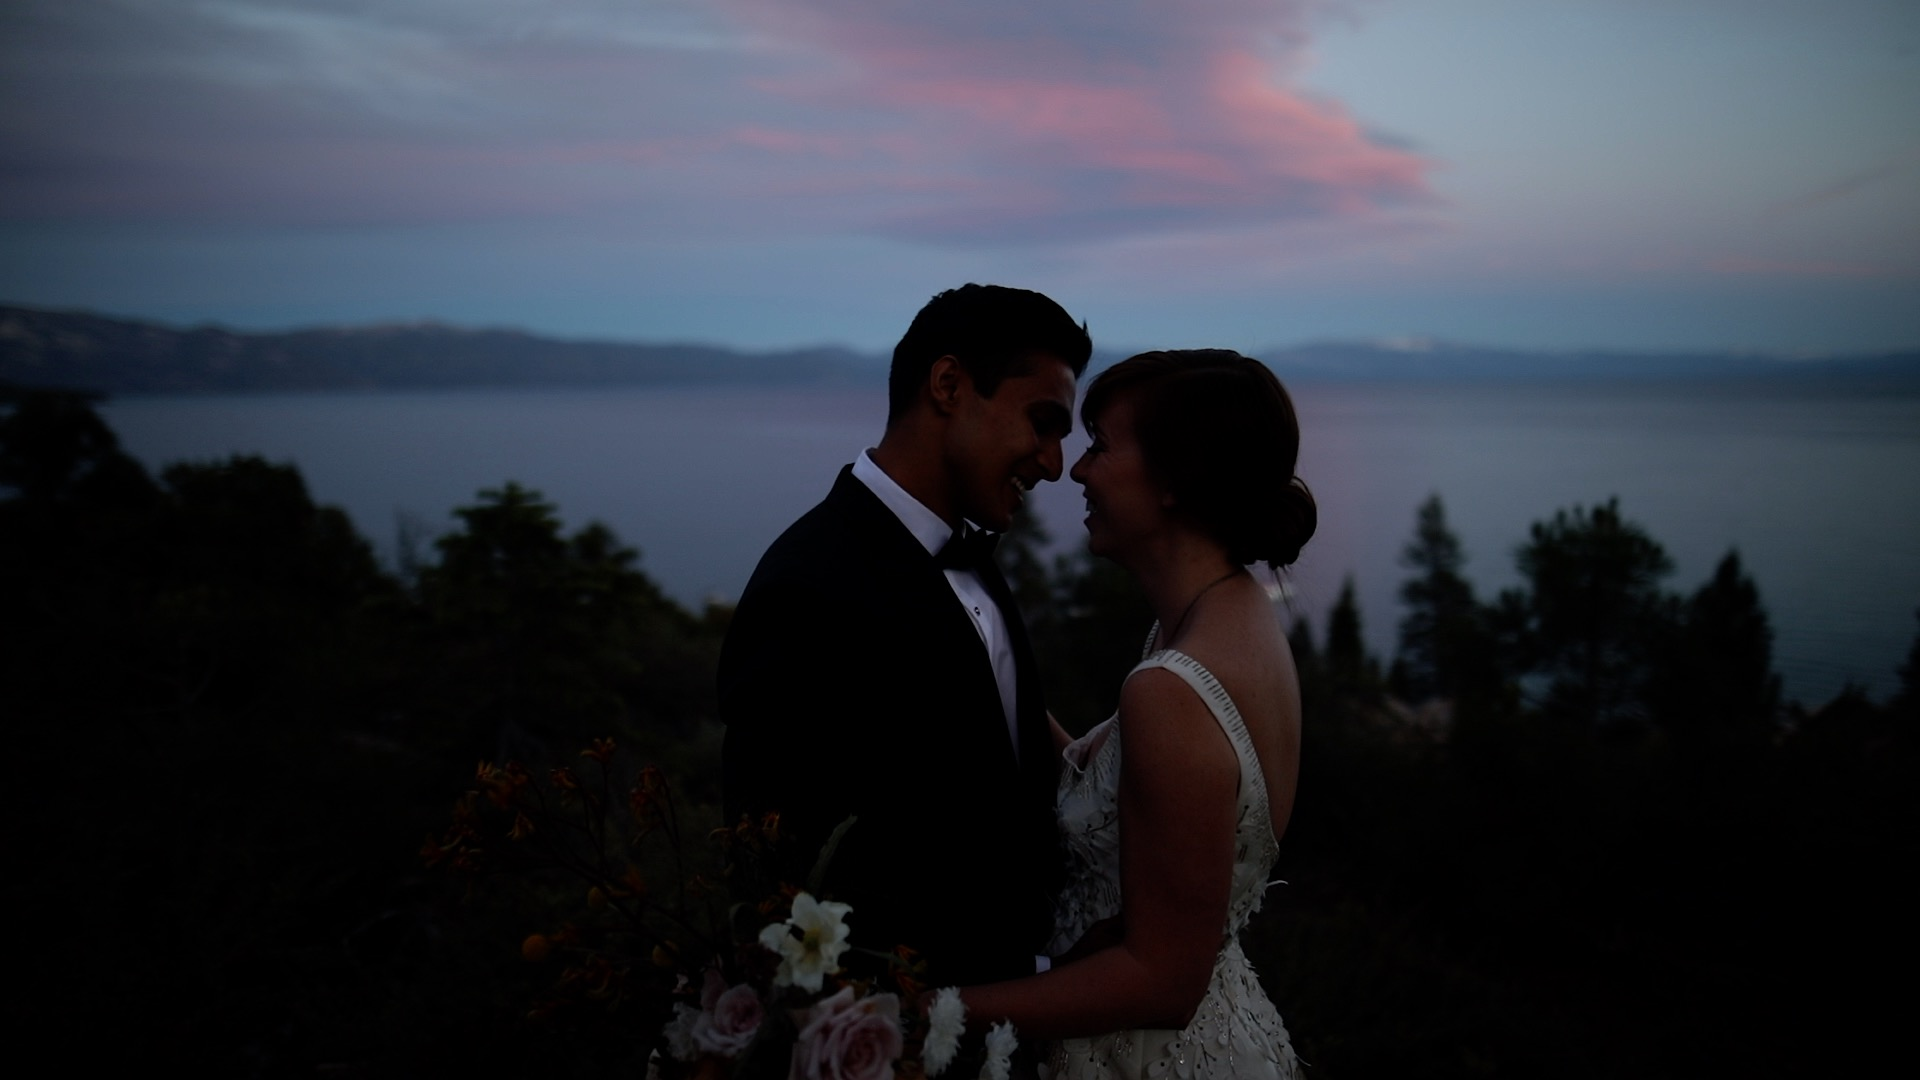 Lili + Amol | Tahoe City, California | a house